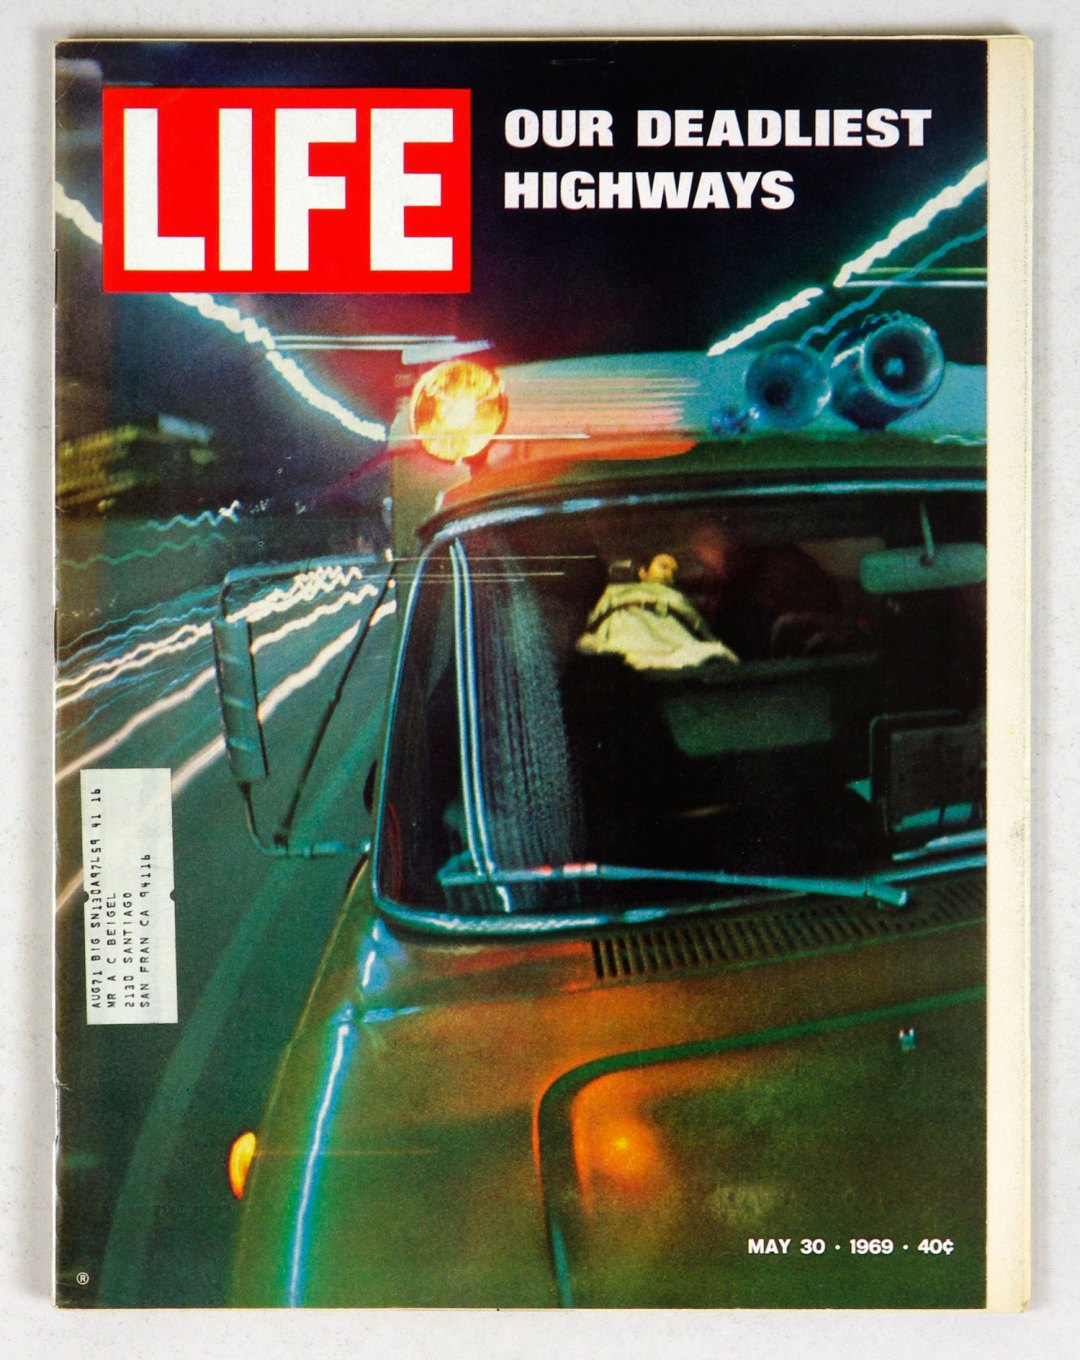 LIFE Magazine 1969 May 30 Our Deadliest Highways